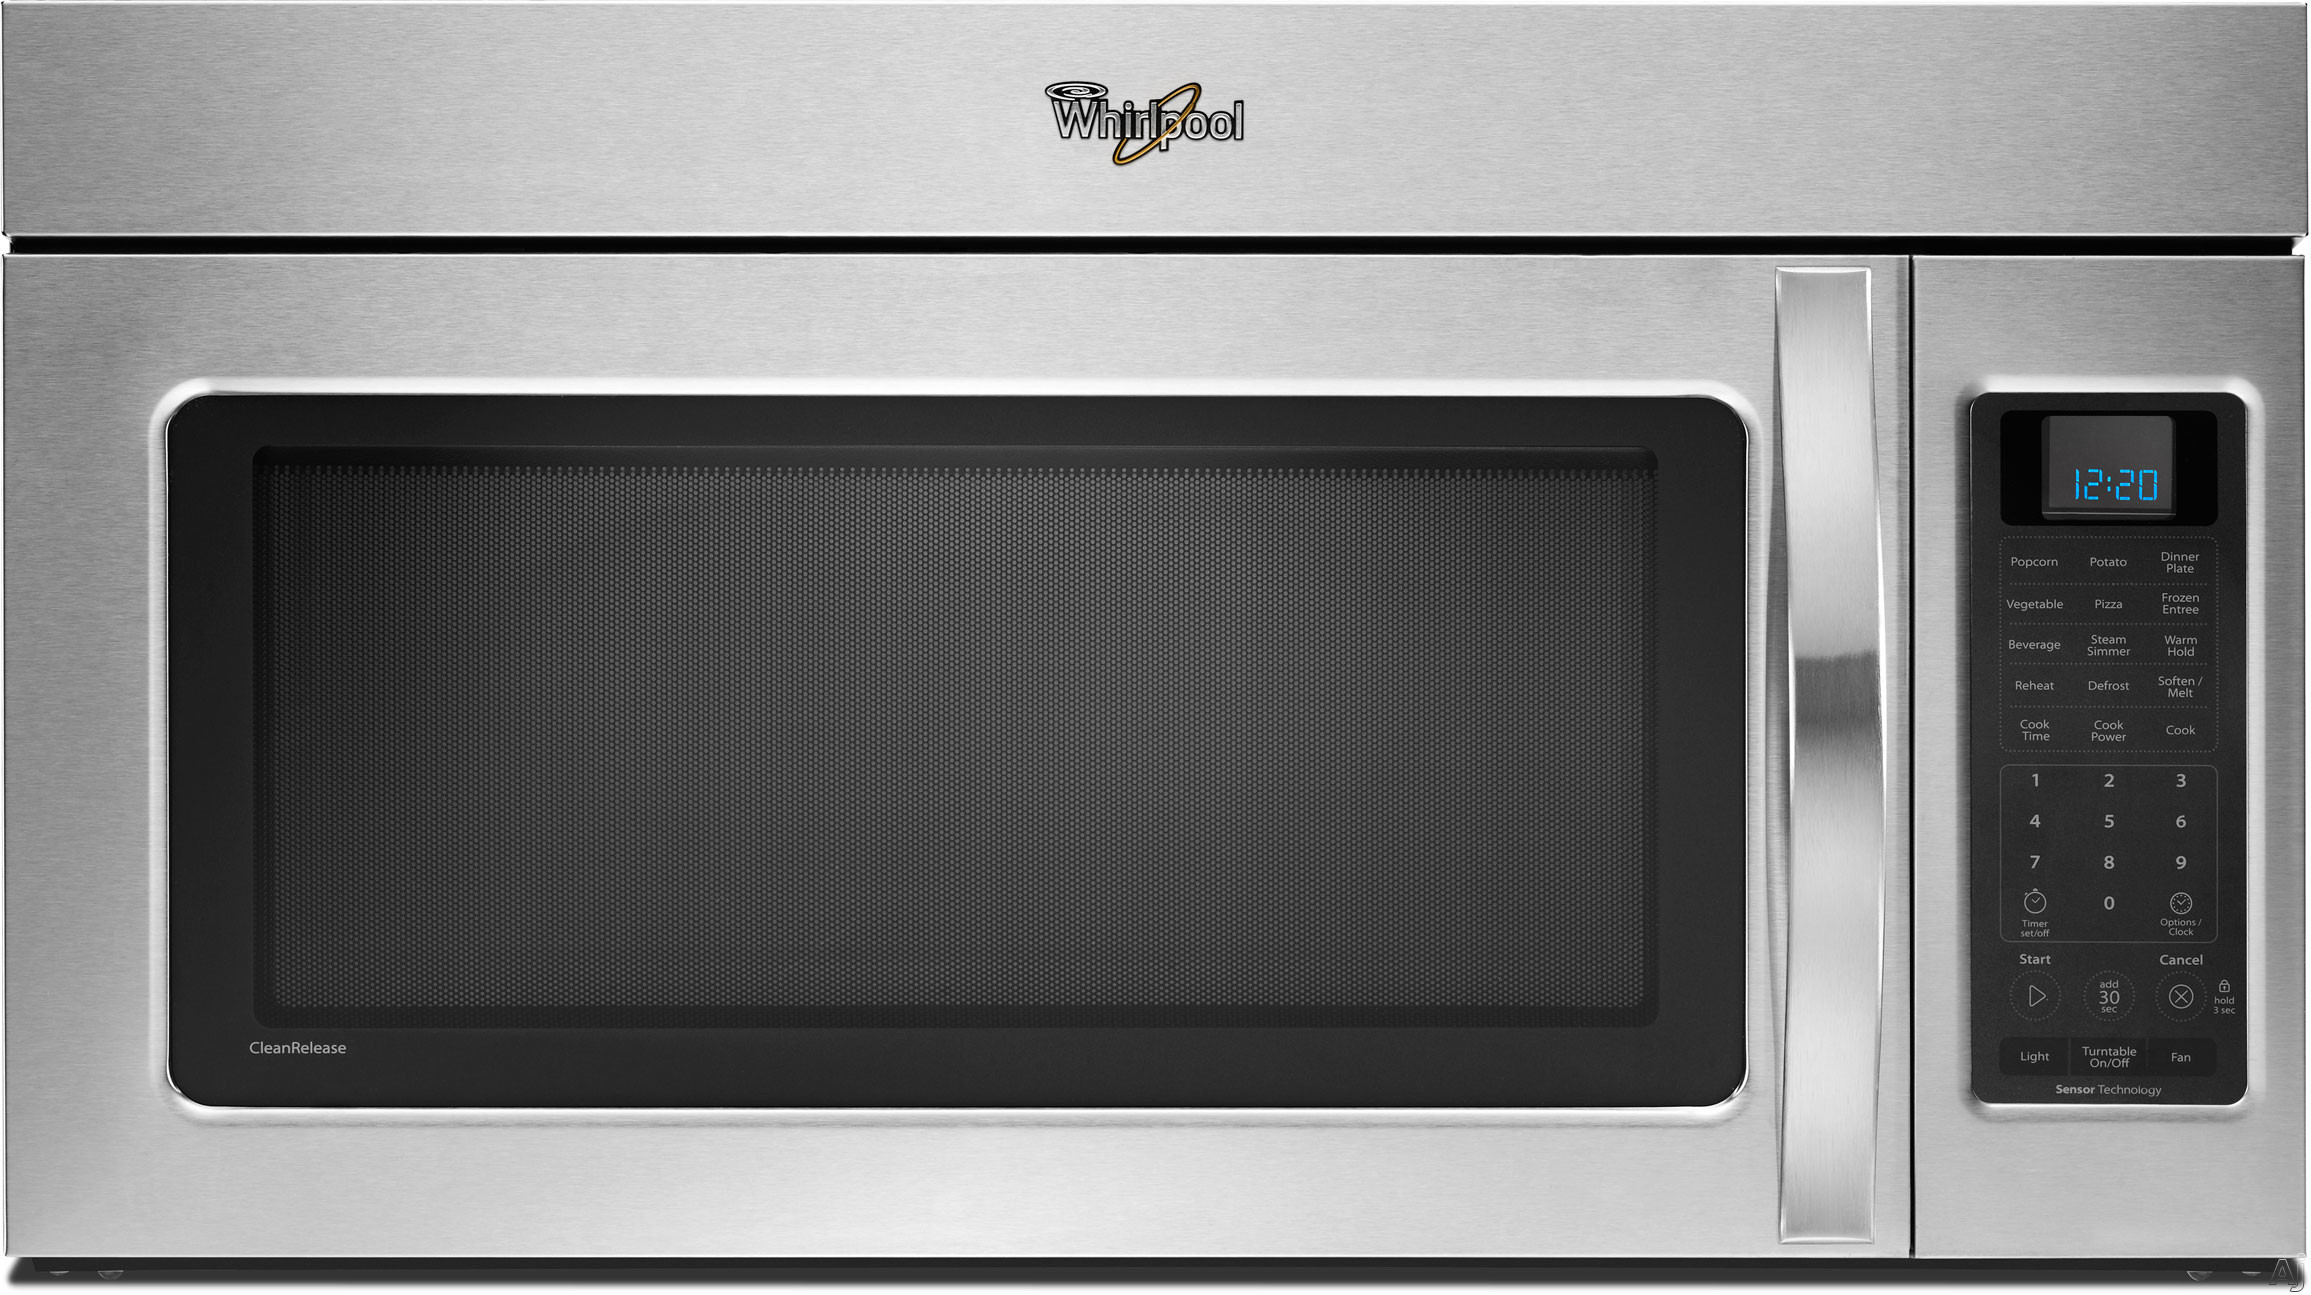 Whirlpool WMH53520AW 2.0 cu. ft. Over-the-Range Microwave Oven with 400 CFM Vent System, 4-Speed, U.S. & Canada WMH53520AW